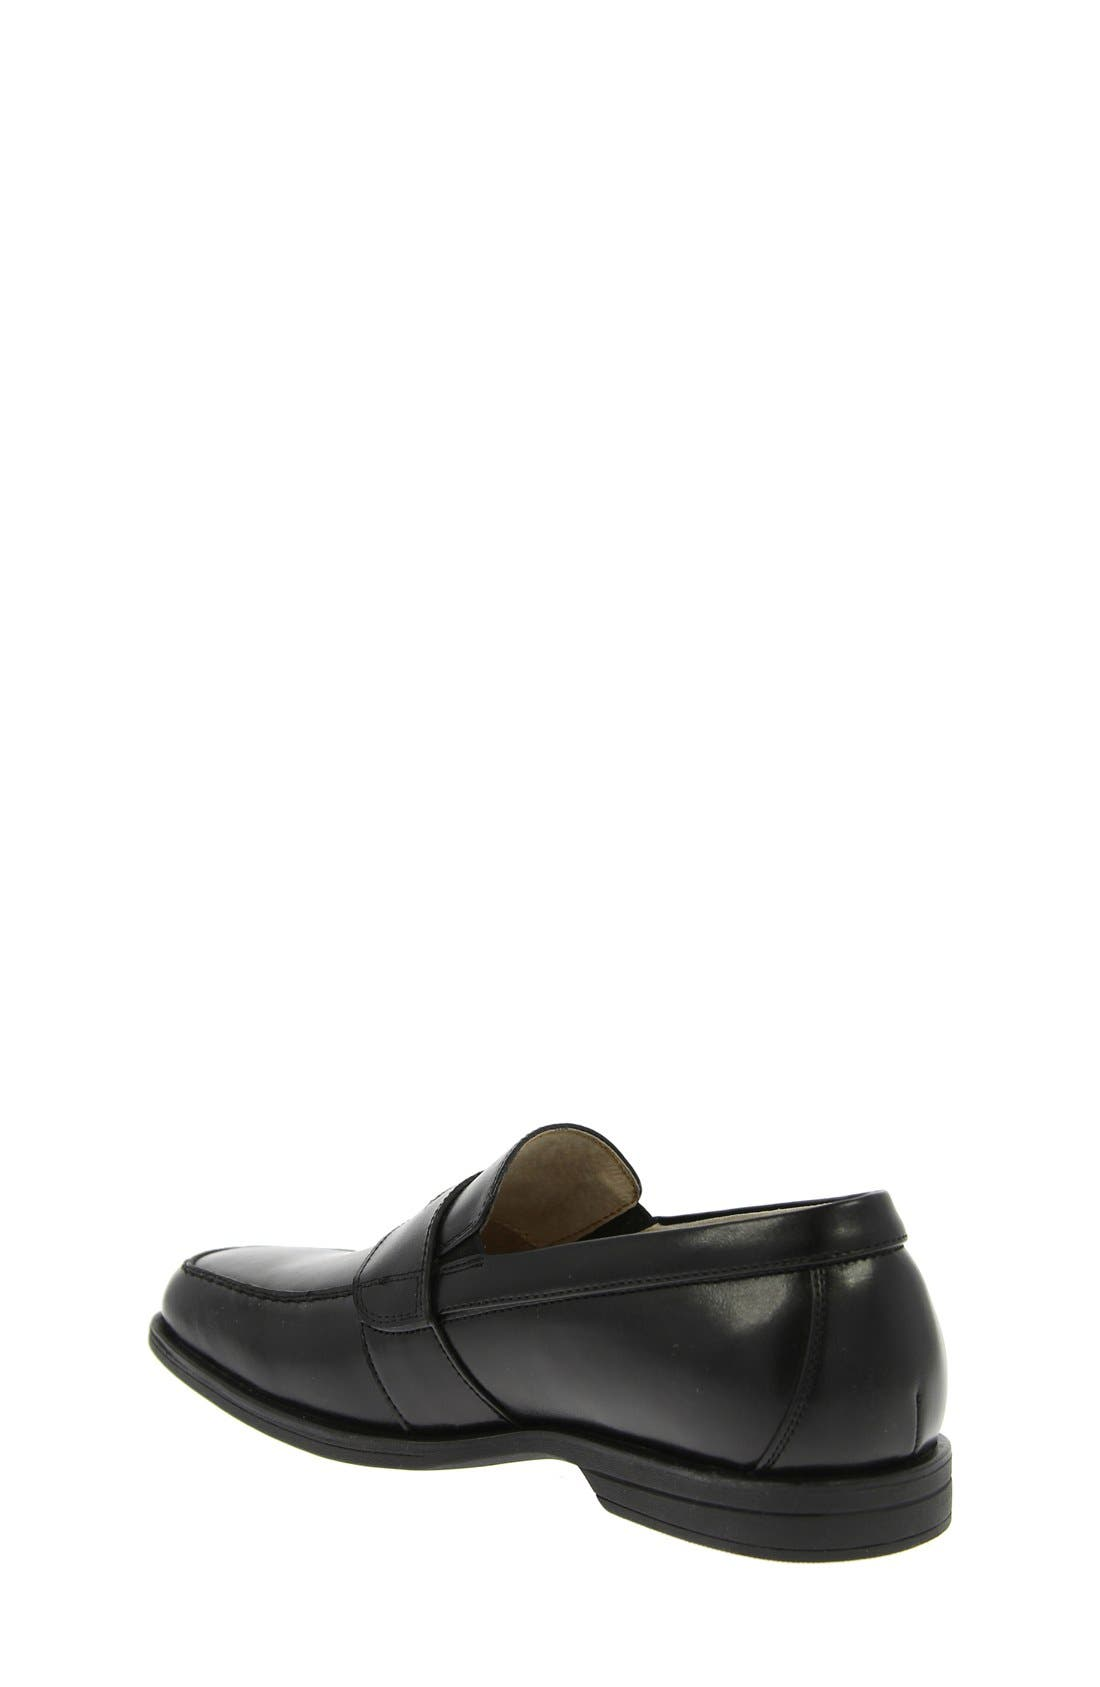 'Reveal' Penny Loafer,                             Alternate thumbnail 9, color,                             BLACK